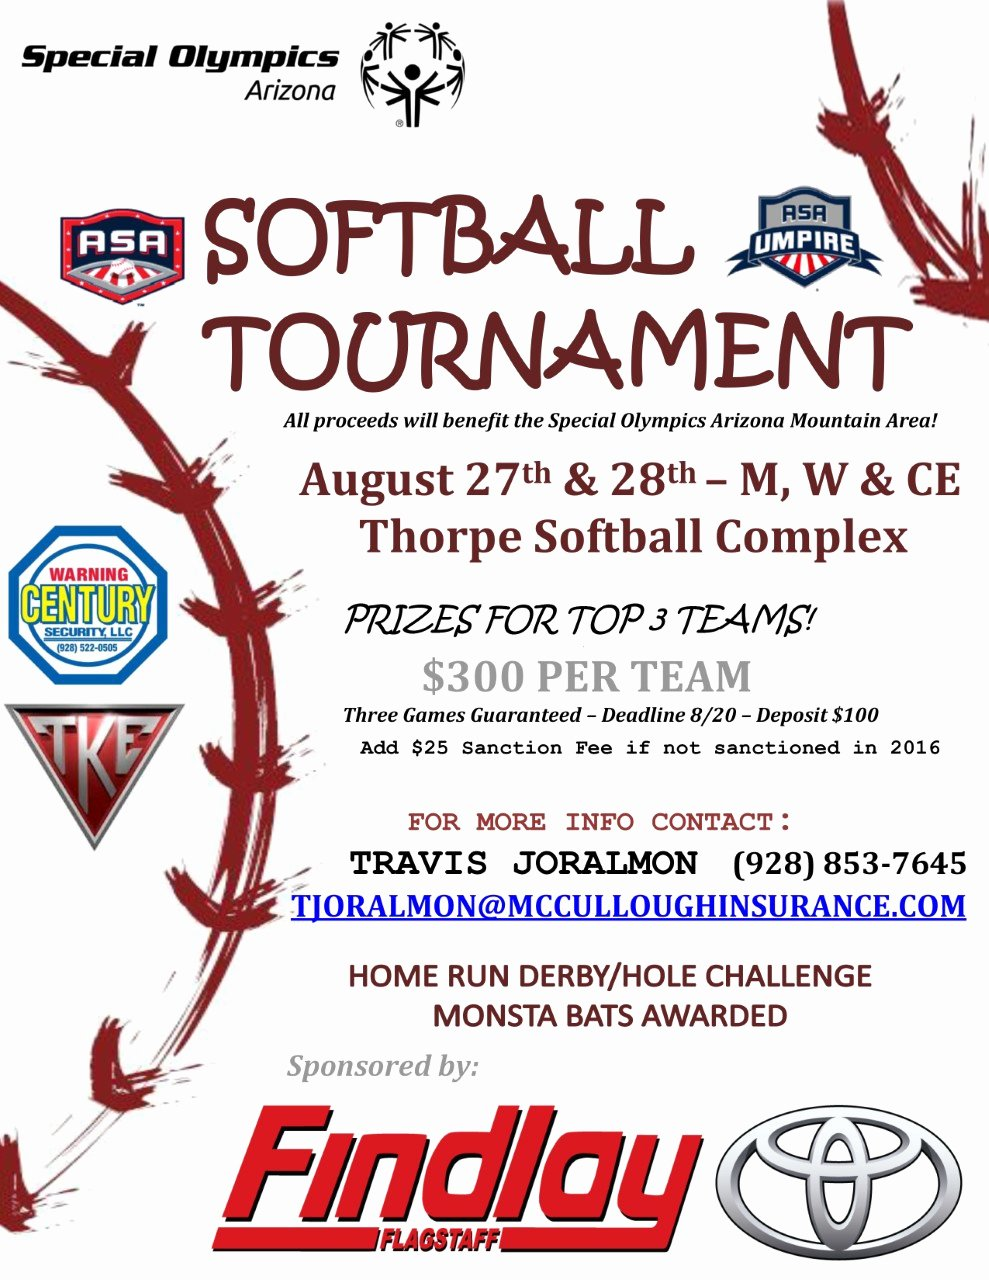 Softball tournament Flyer Template New Special Olympics Arizona softball tournament to Support